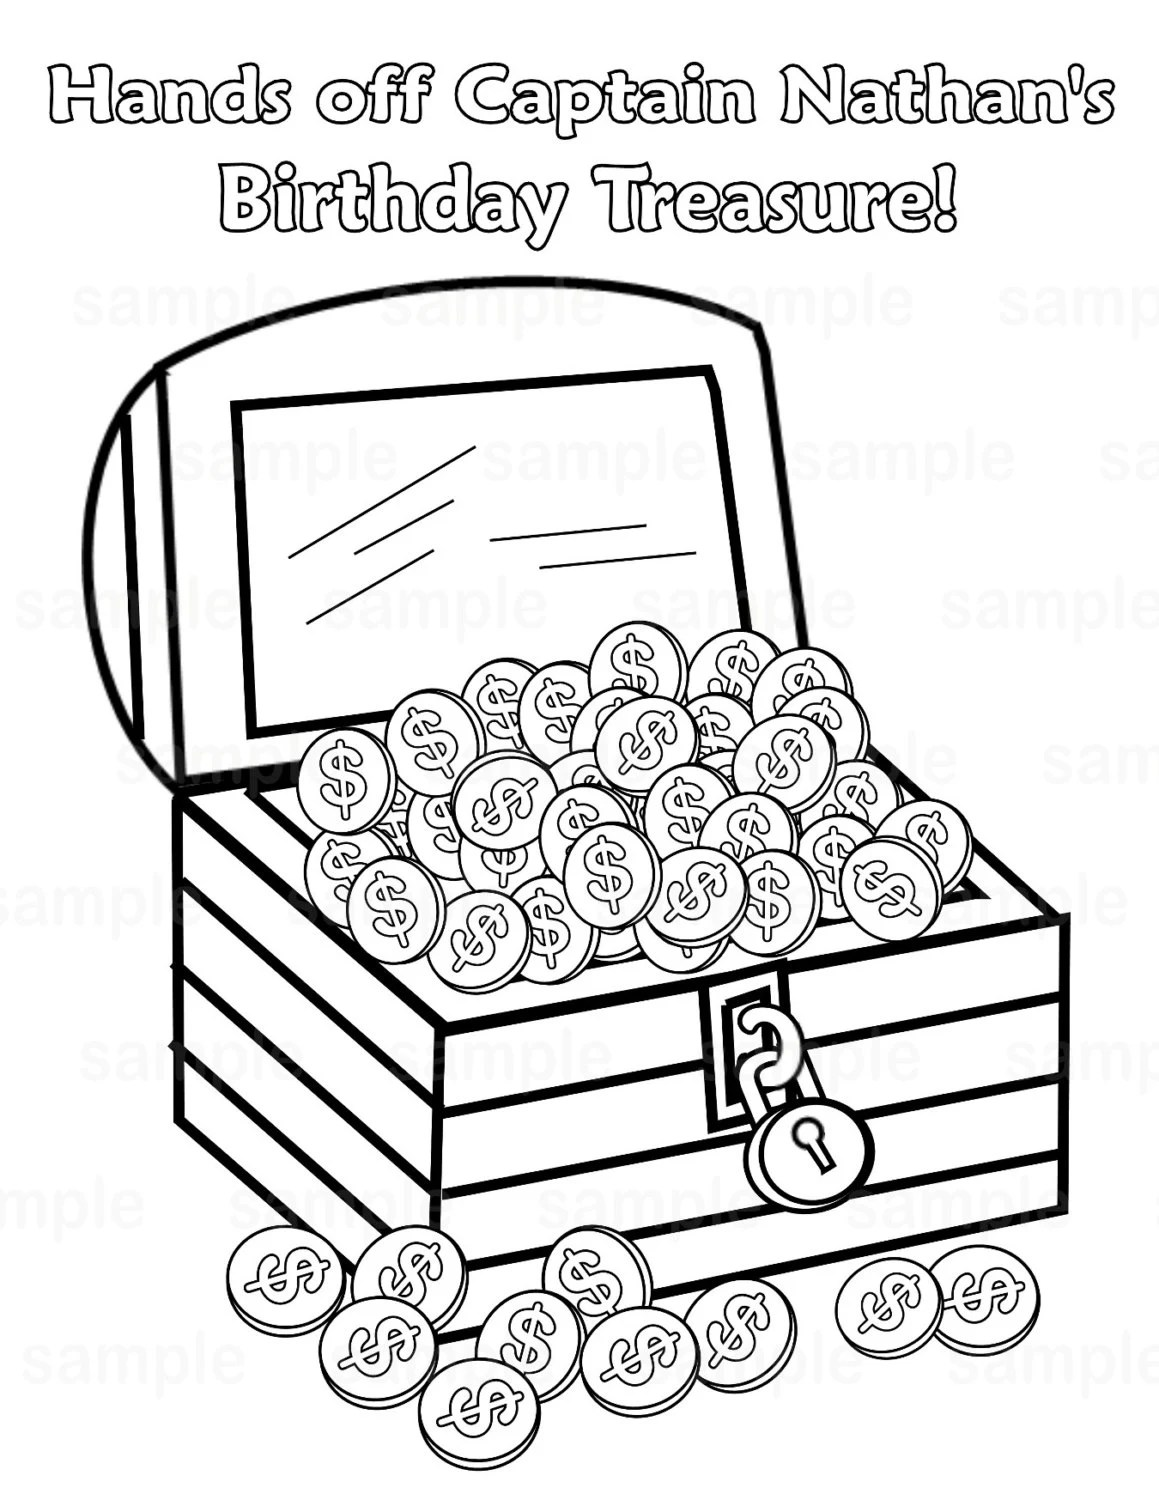 Personalized Printable Pirate Treasure chest Birthday